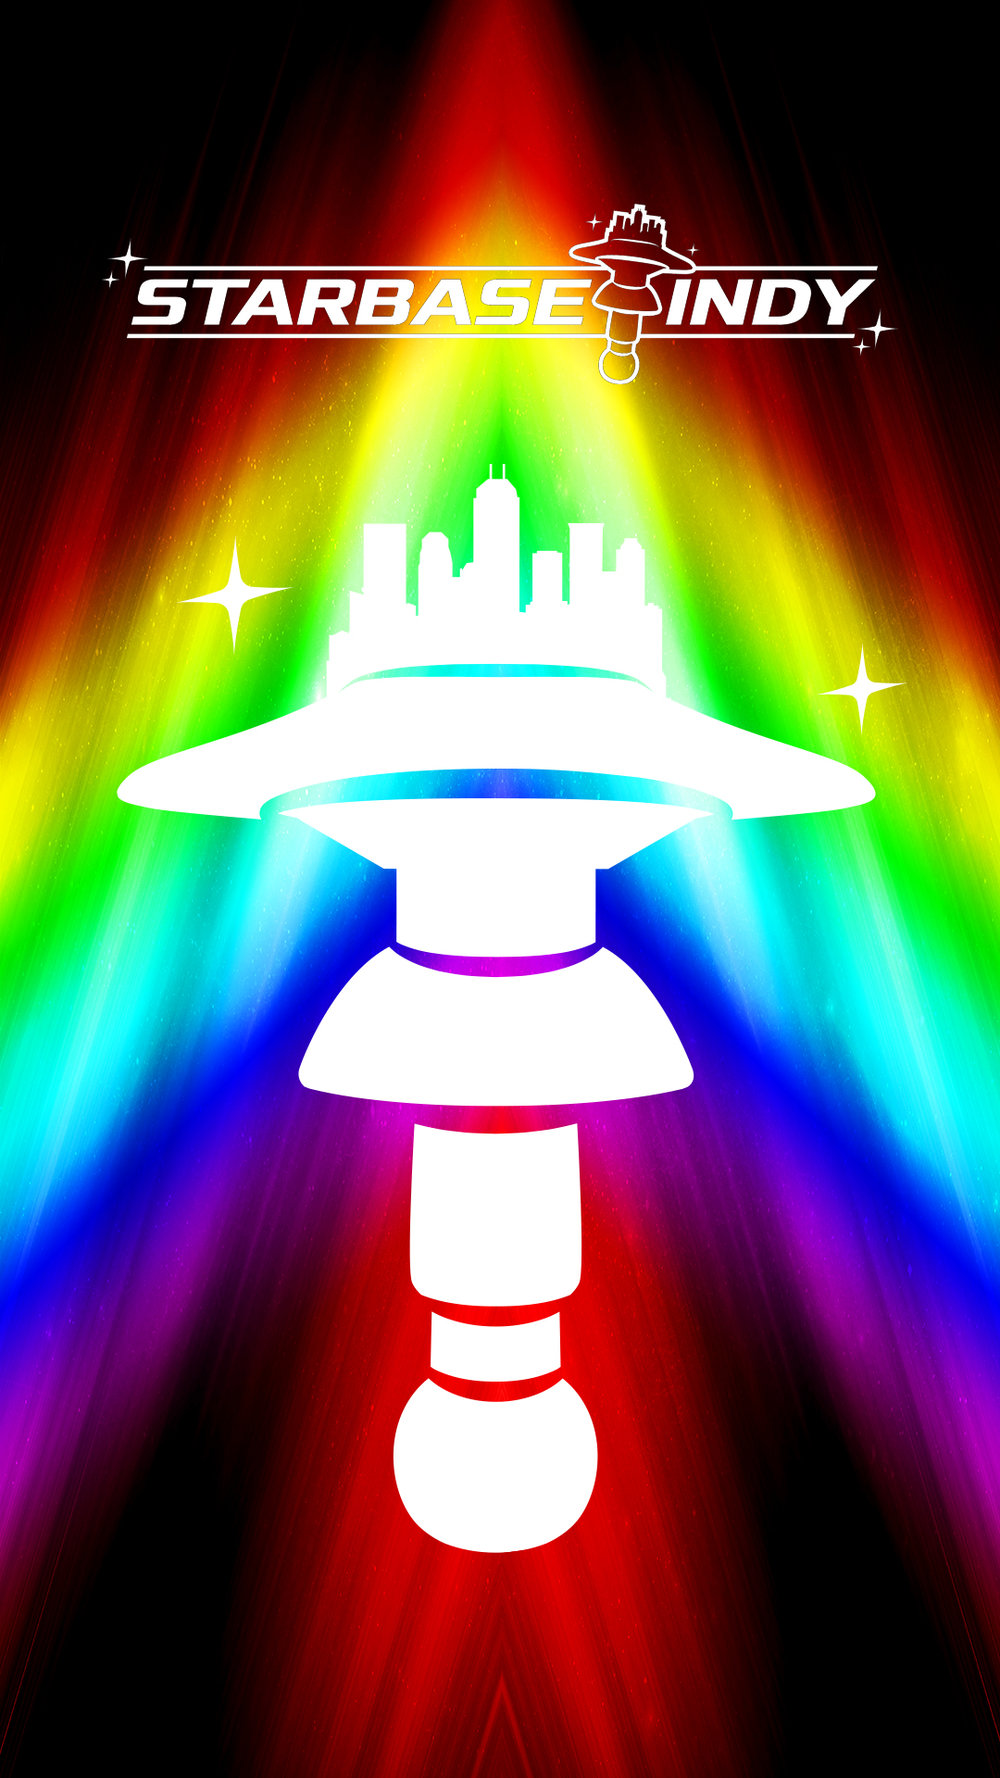 2018 Rainbow Phone Screensaver (1080 x 1920)